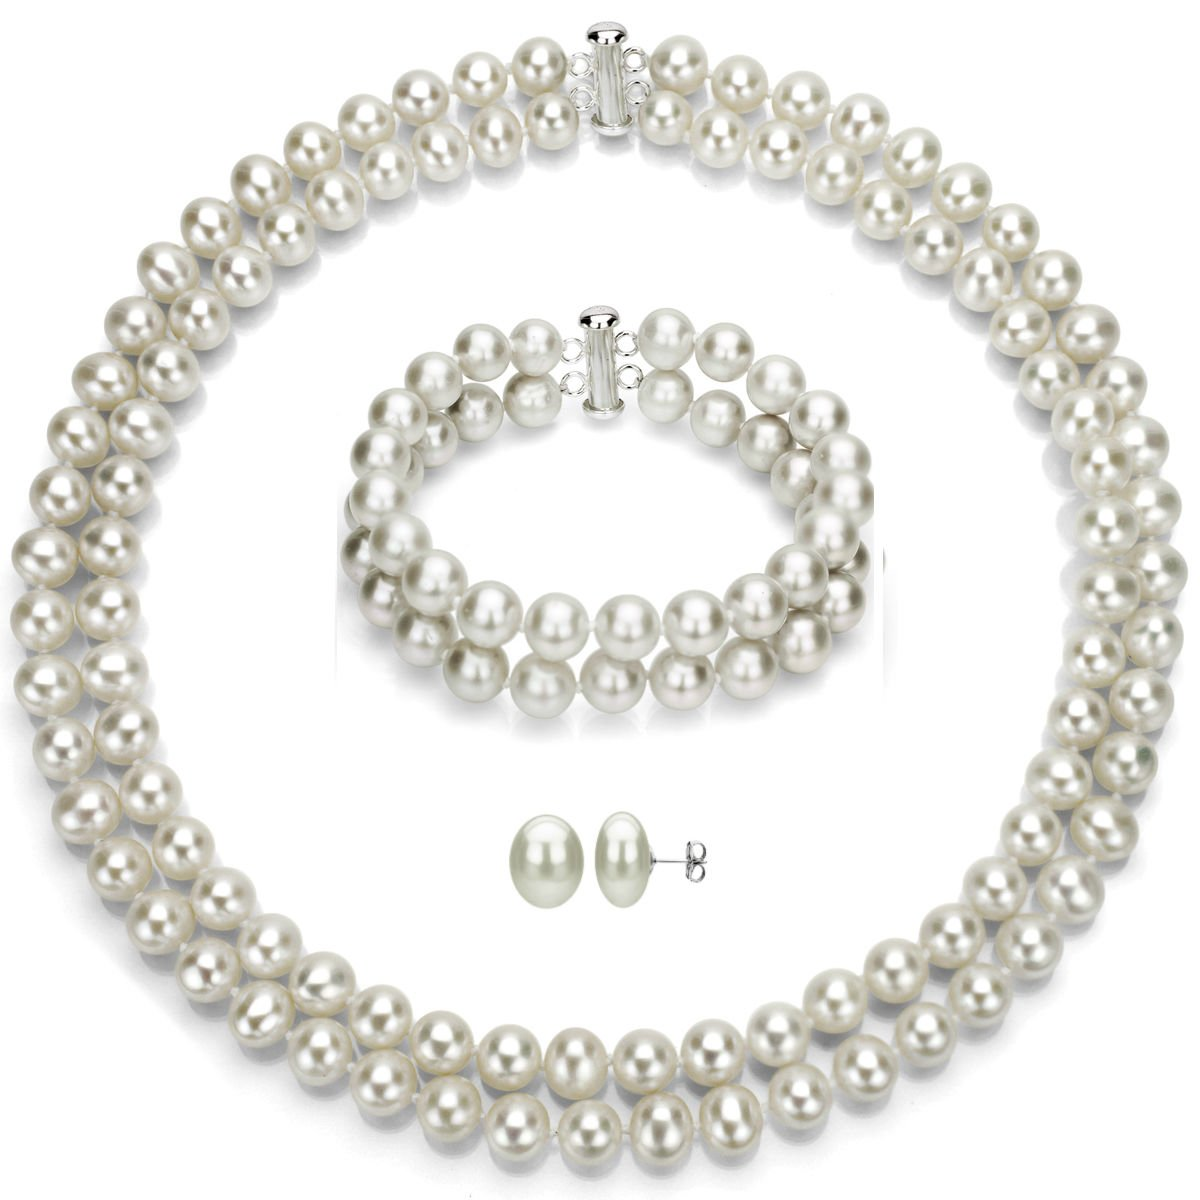 Sterling Silver 2-rows 8-8.5mm White Freshwater Cultured Pearl Necklace, Bracelet & Stud Earrings